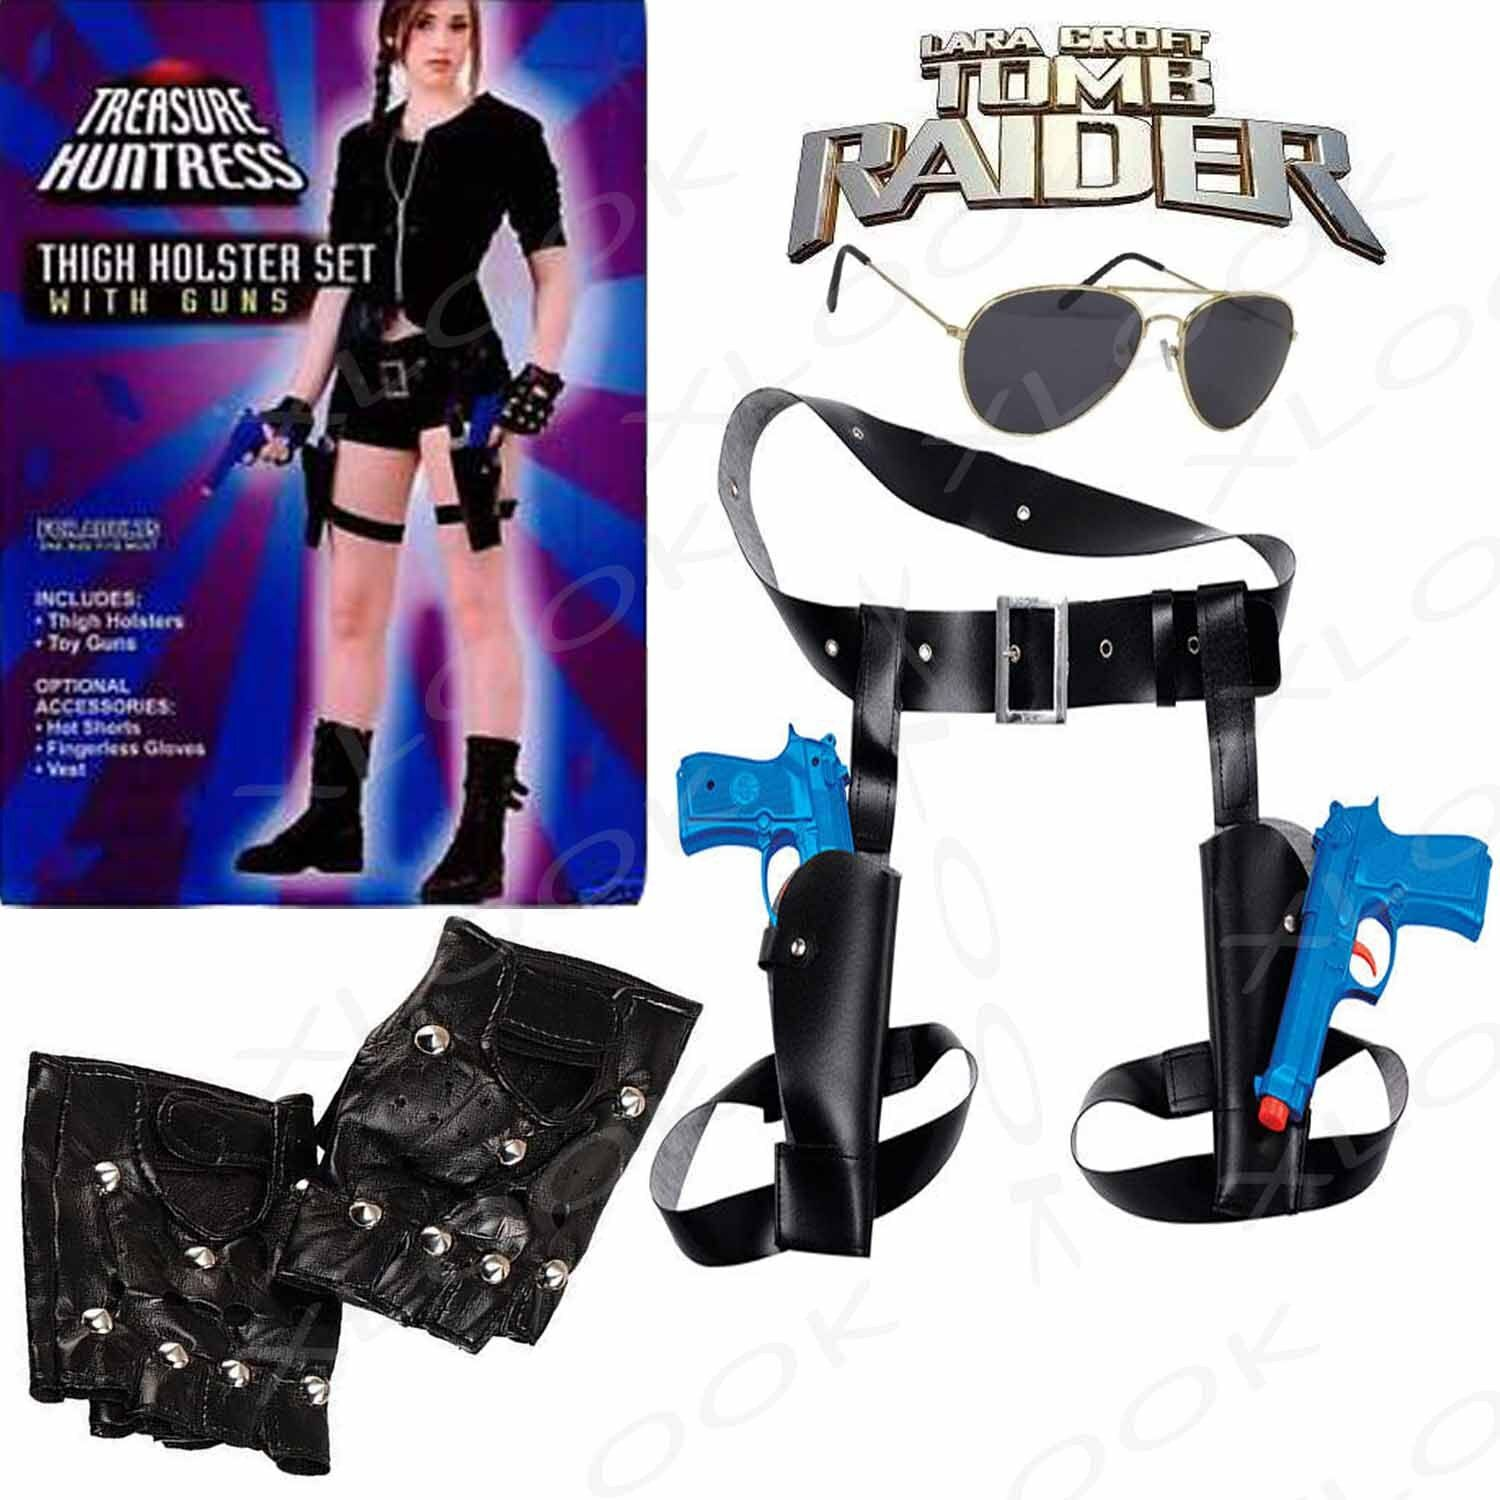 Gloves and Sunglasses Lara Croft Costume accessories With Twin Guns